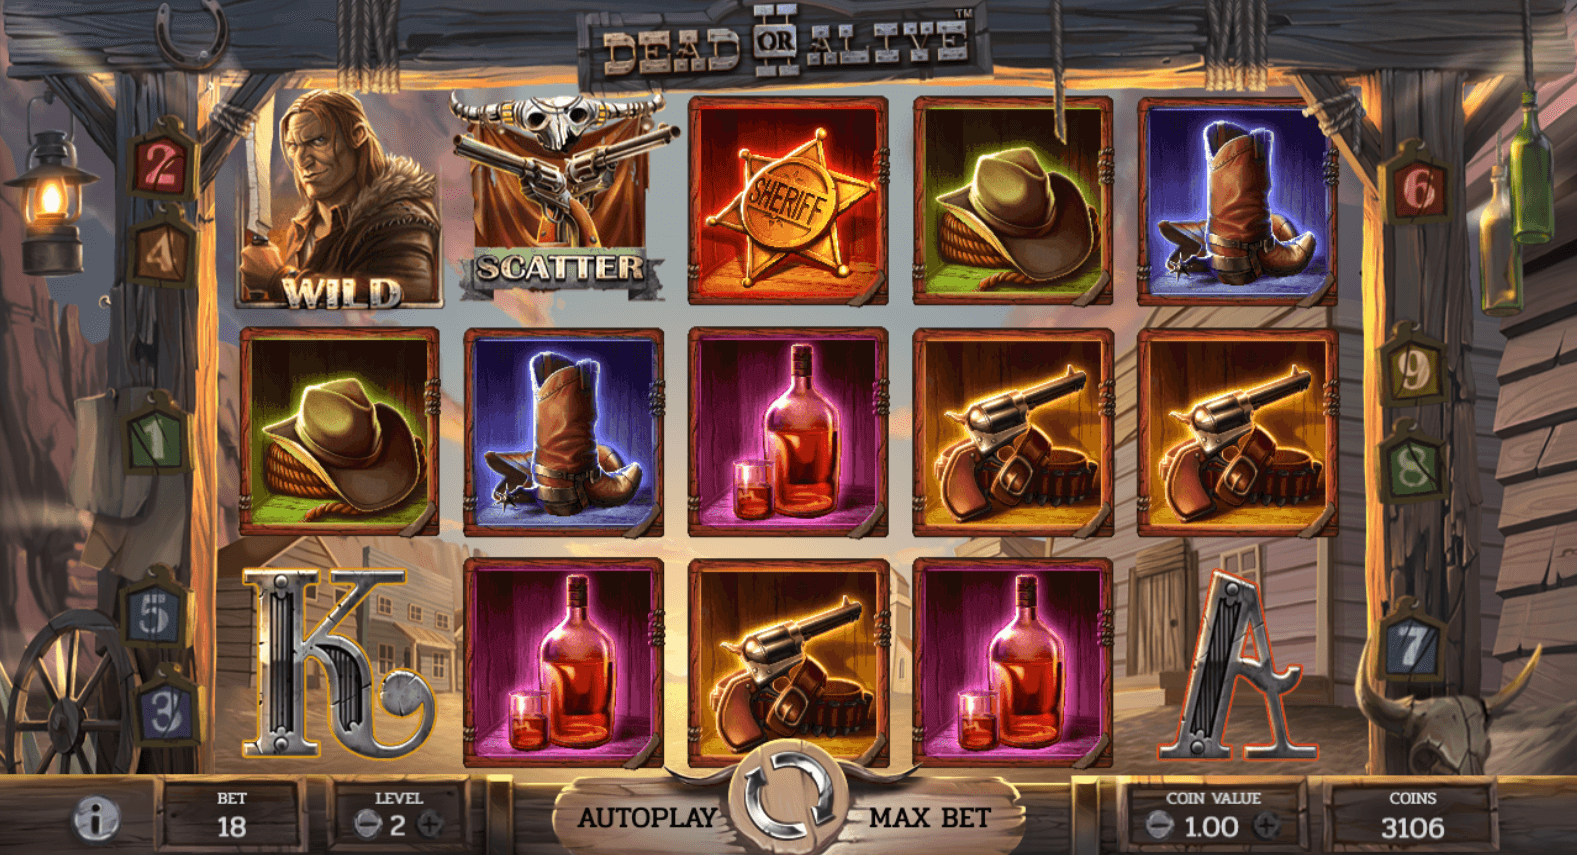 screenshot of Dead or Alive 2 slot gameplay interface